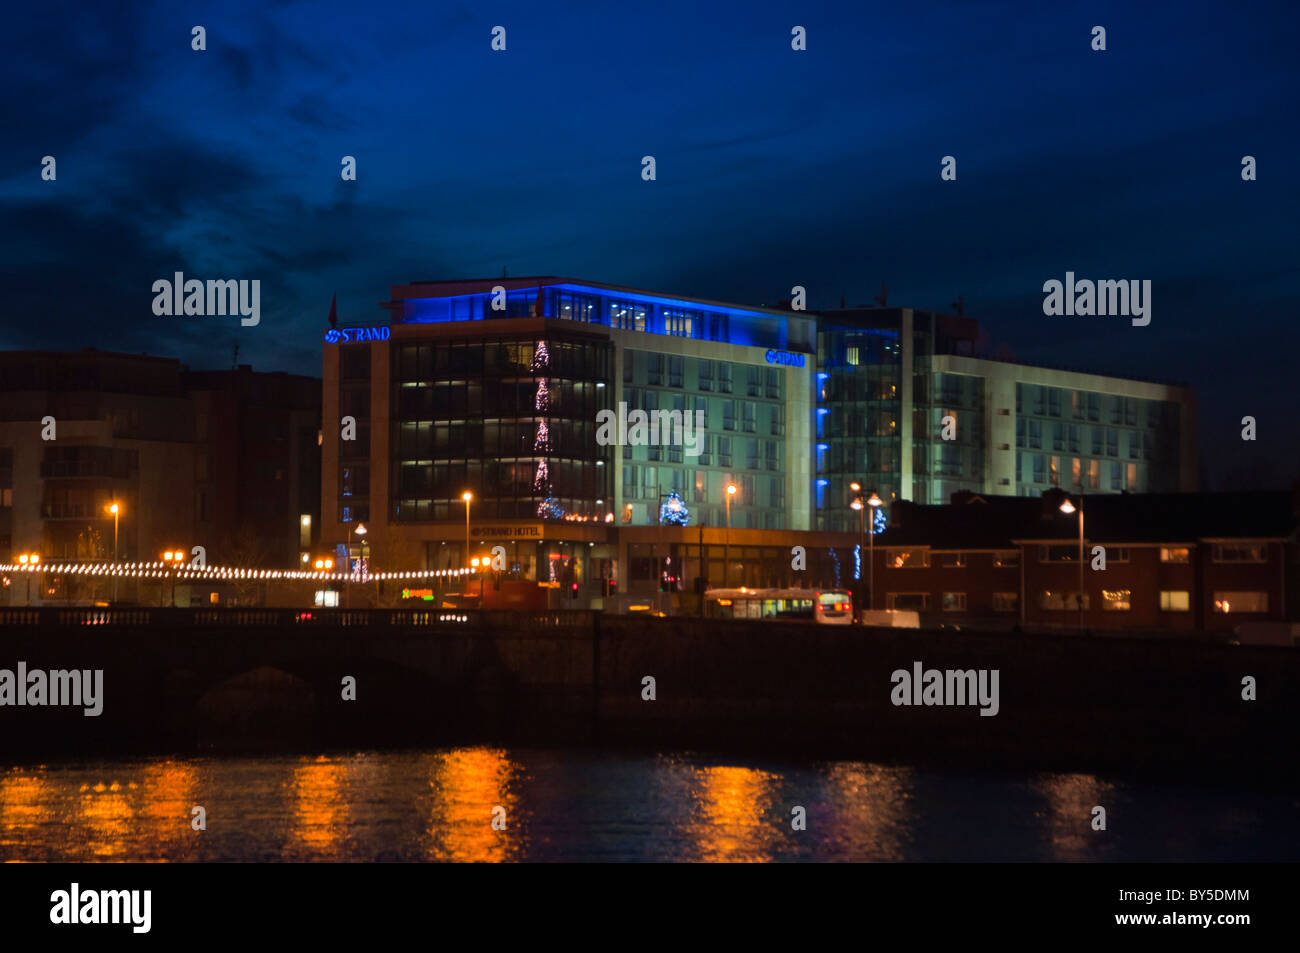 The 5 star Strand hotel on the banks of the river Shannon in Limerick city, Republic of Ireland - Stock Image